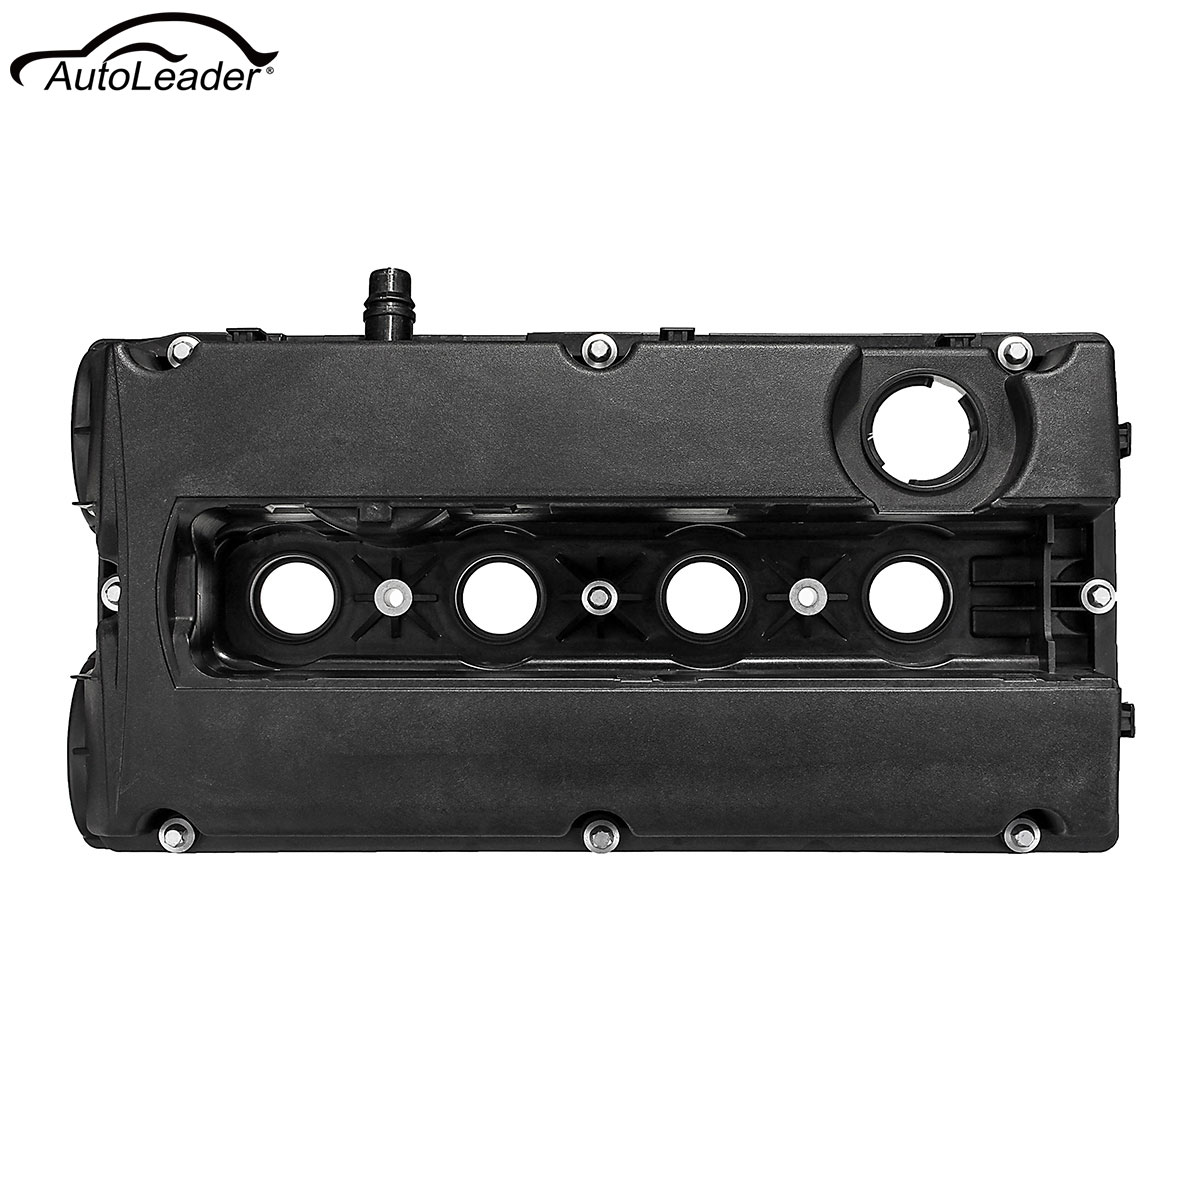 New Cam Rocker Cover and Gasket for Vauxhall Zafira Meriva Vectra Z16XEP for Vauxhall?ZAFIRA?1998-2004?Z16XEP